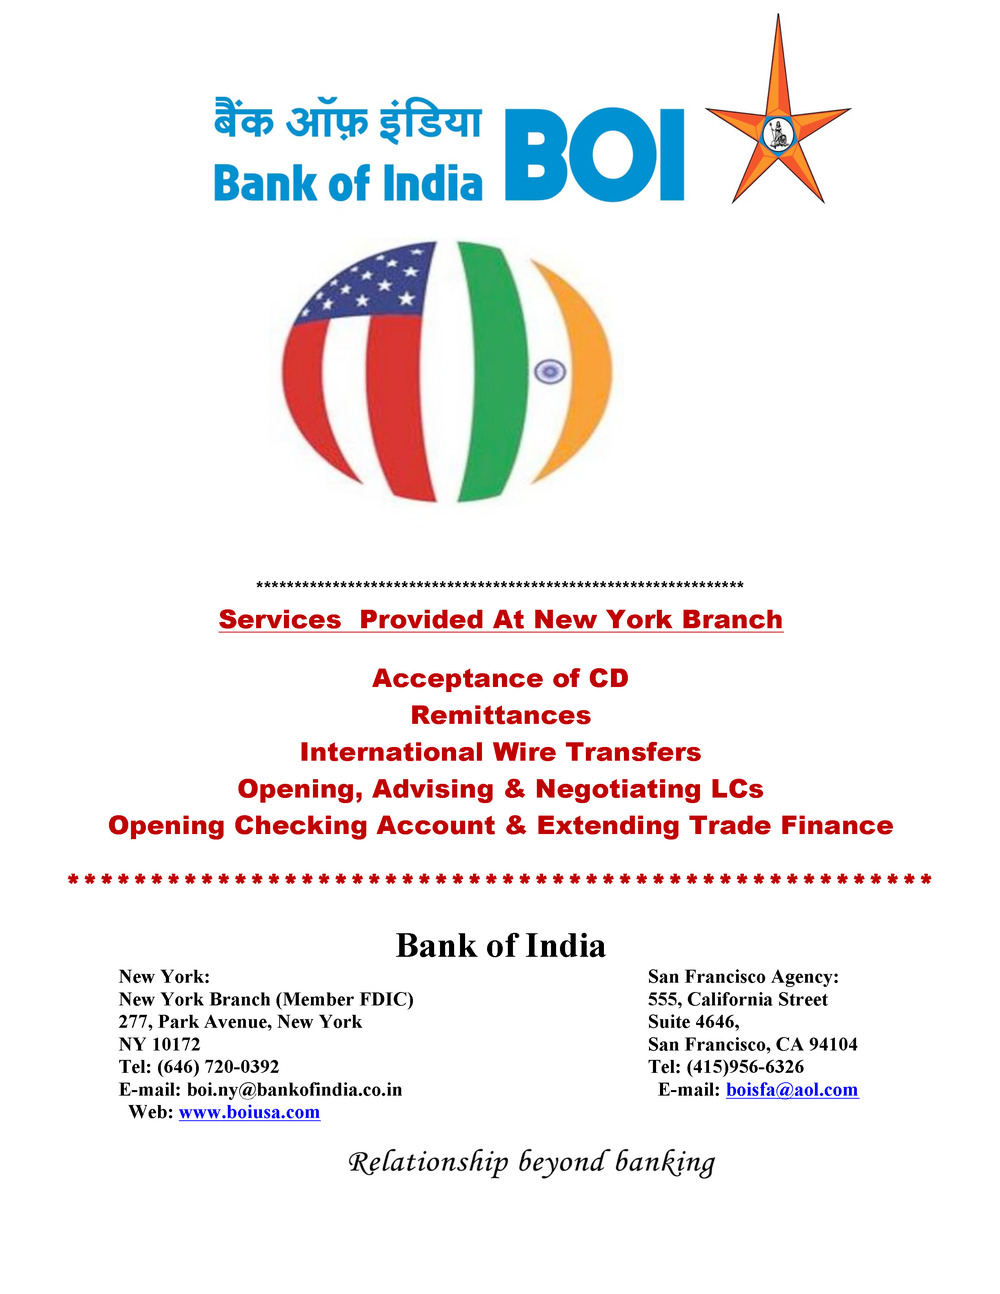 BankofIndia_InternationalHindiConference.jpg